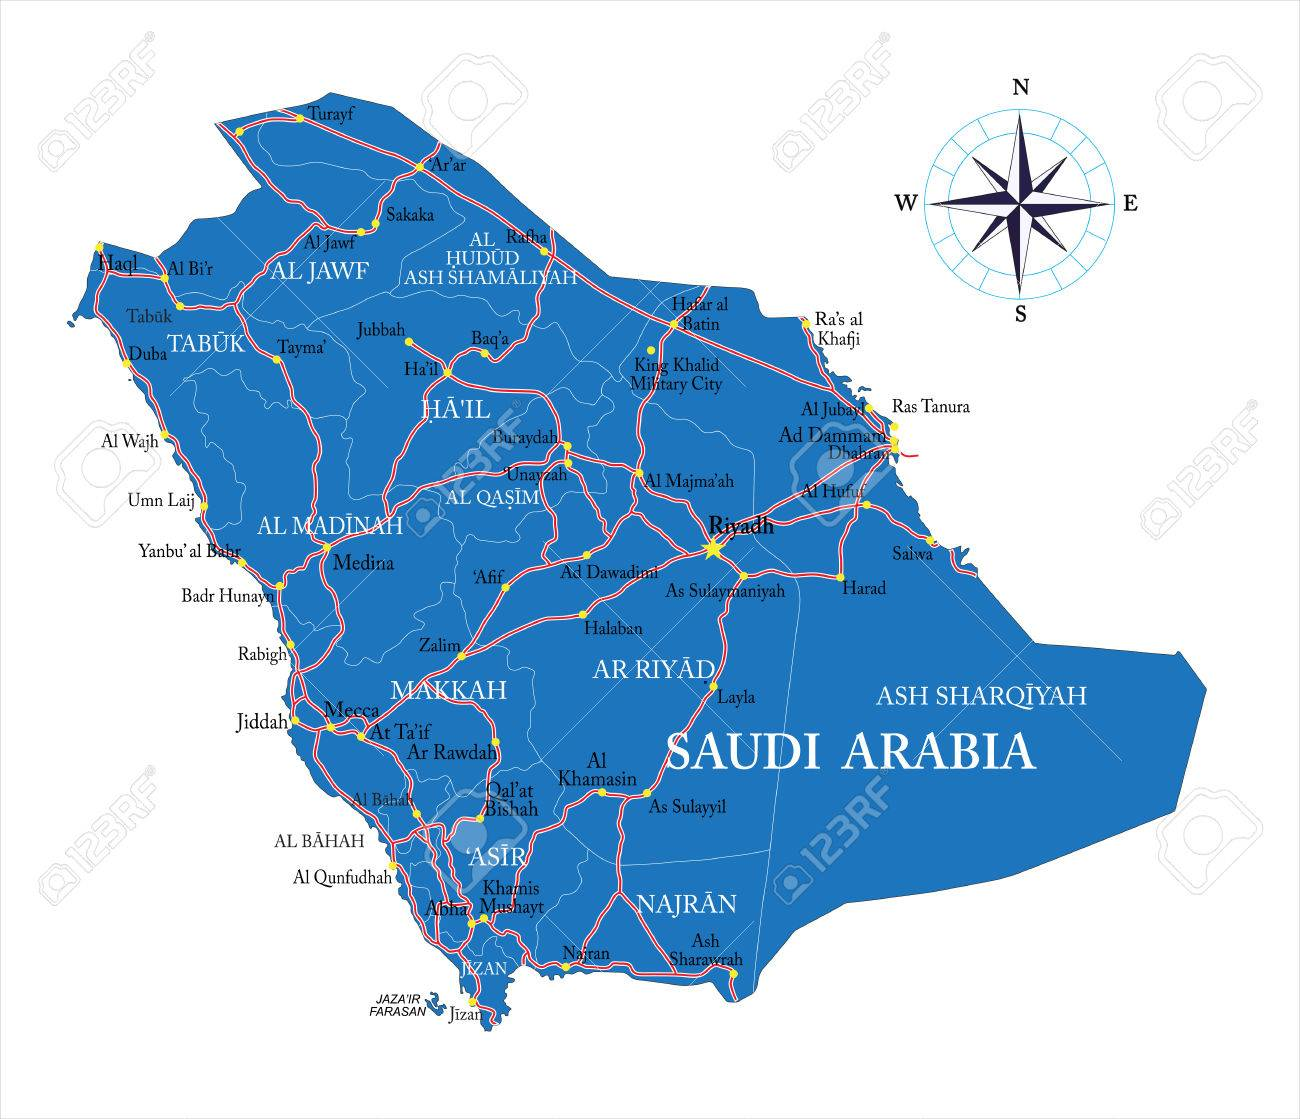 Saudi Arabia Map Royalty Free Cliparts, Vectors, And Stock ... on